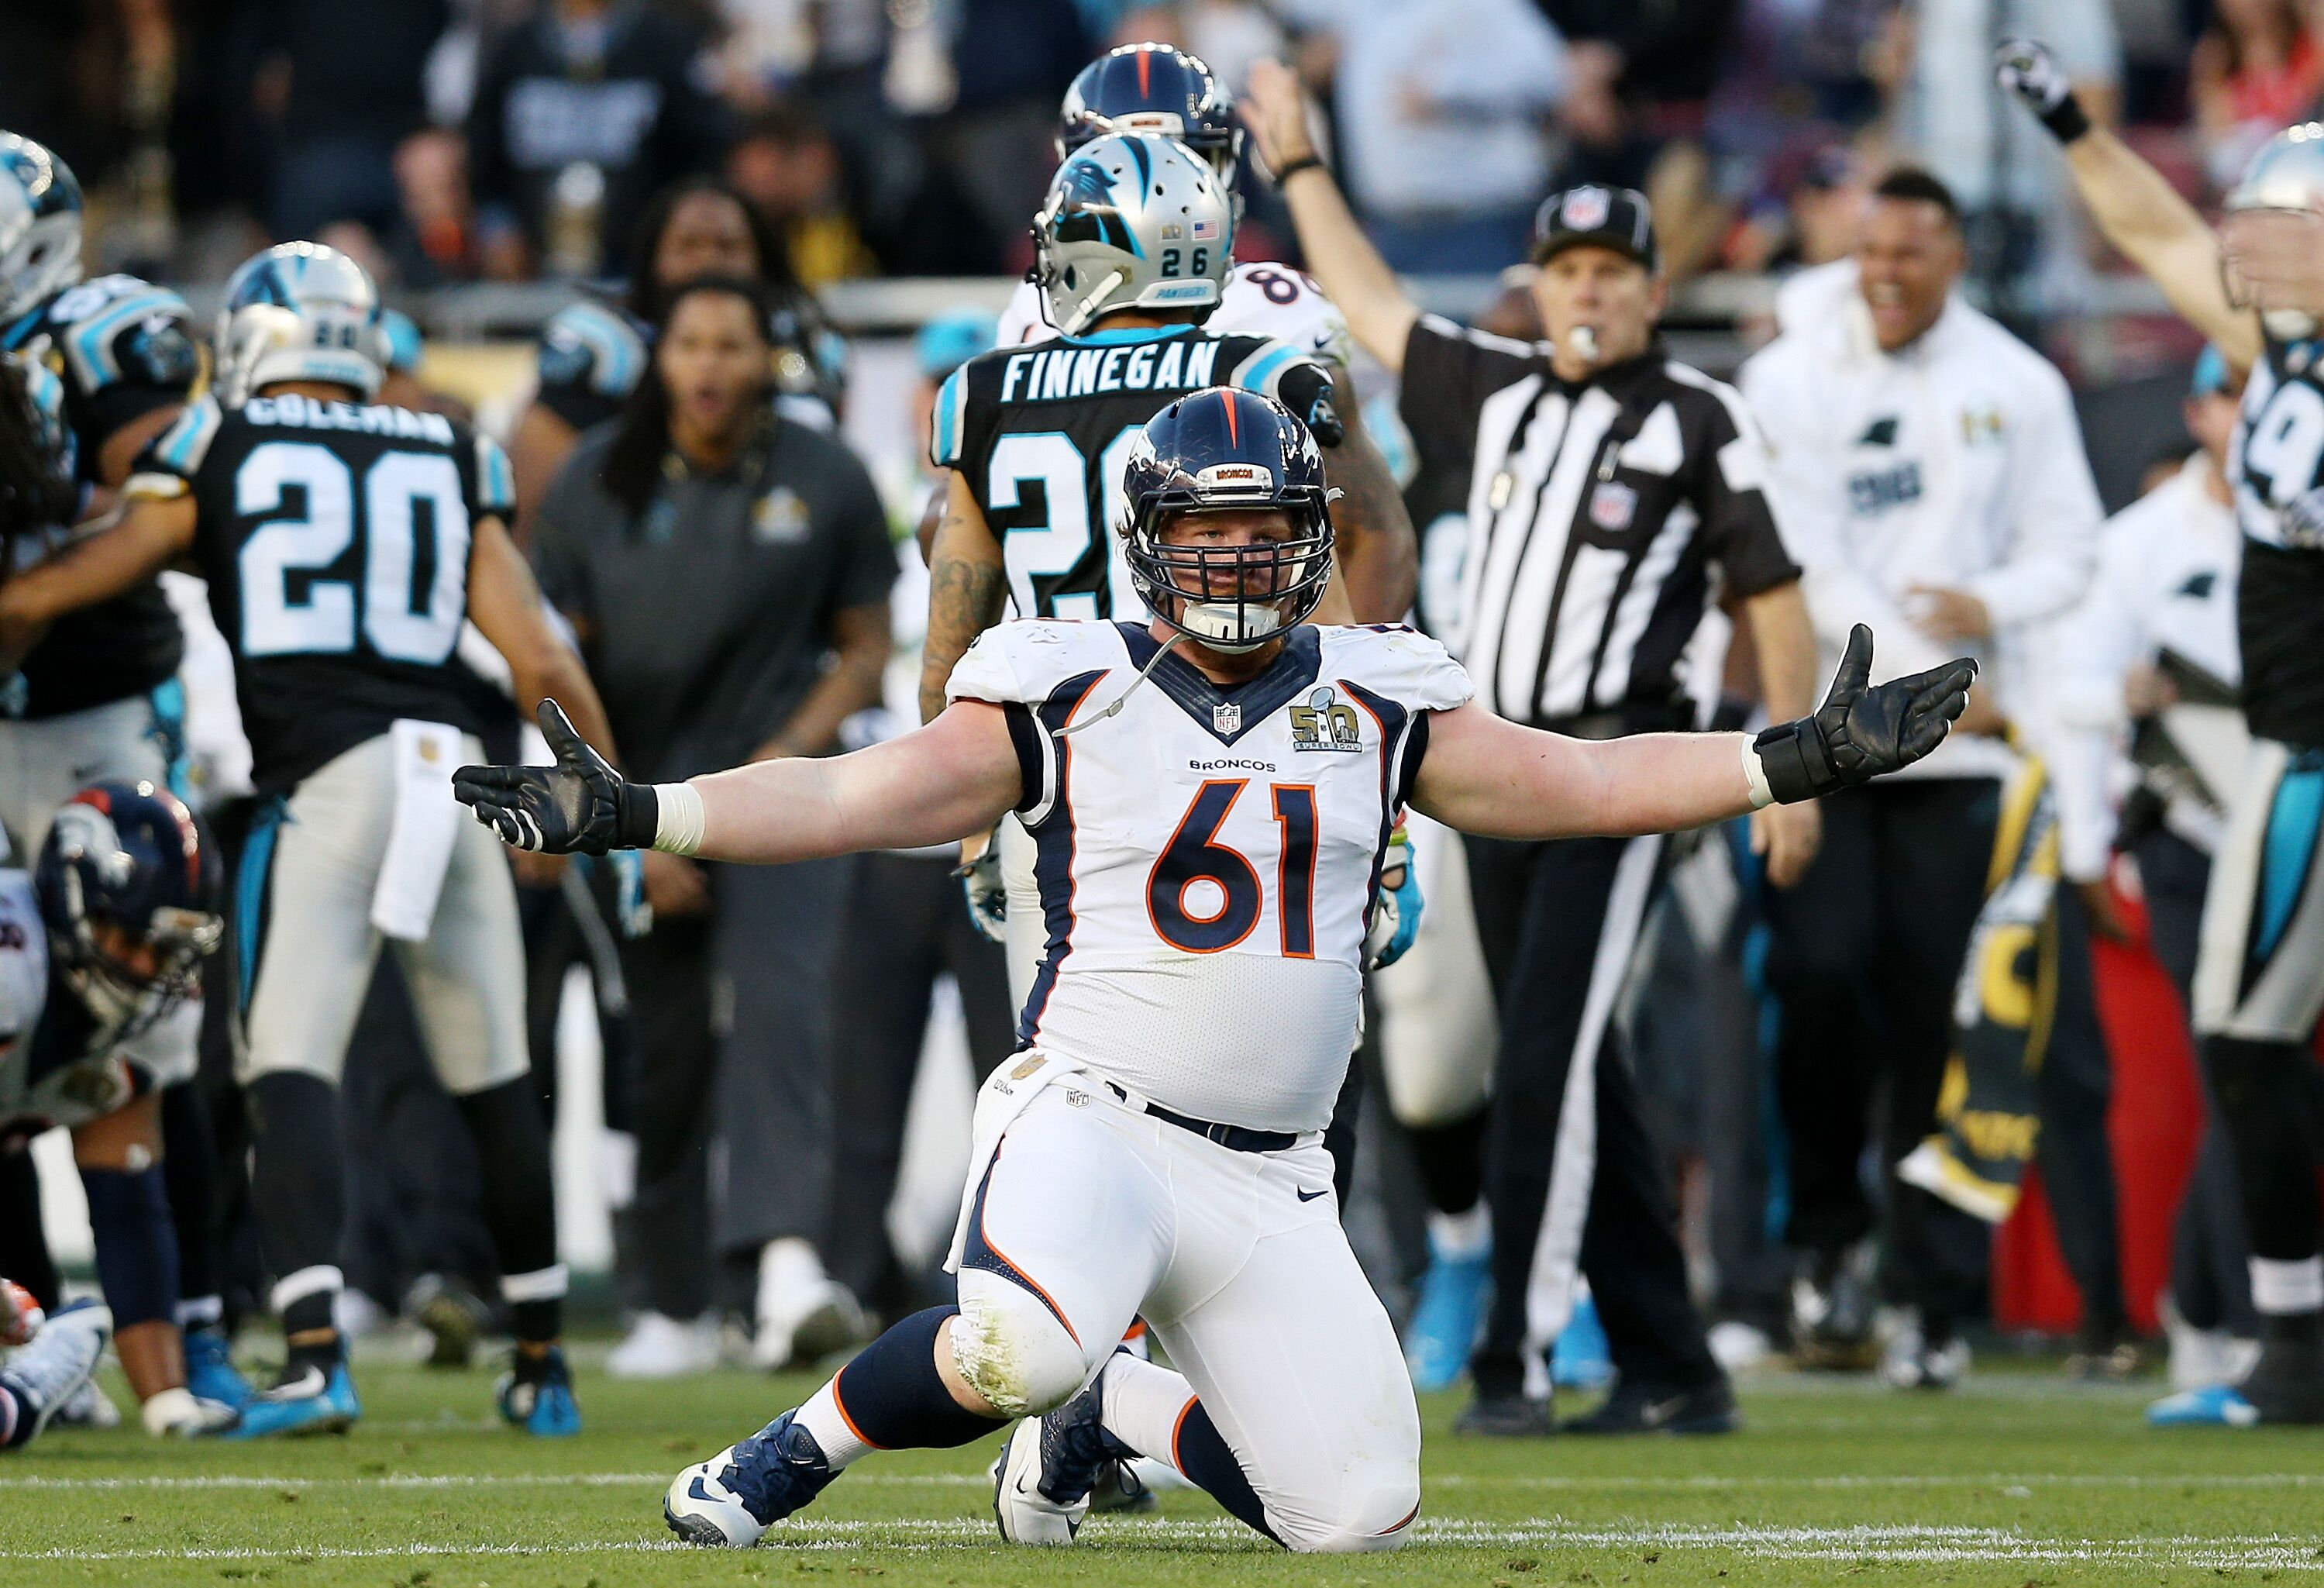 508985414-super-bowl-50-carolina-panthers-v-denver-broncos.jpg